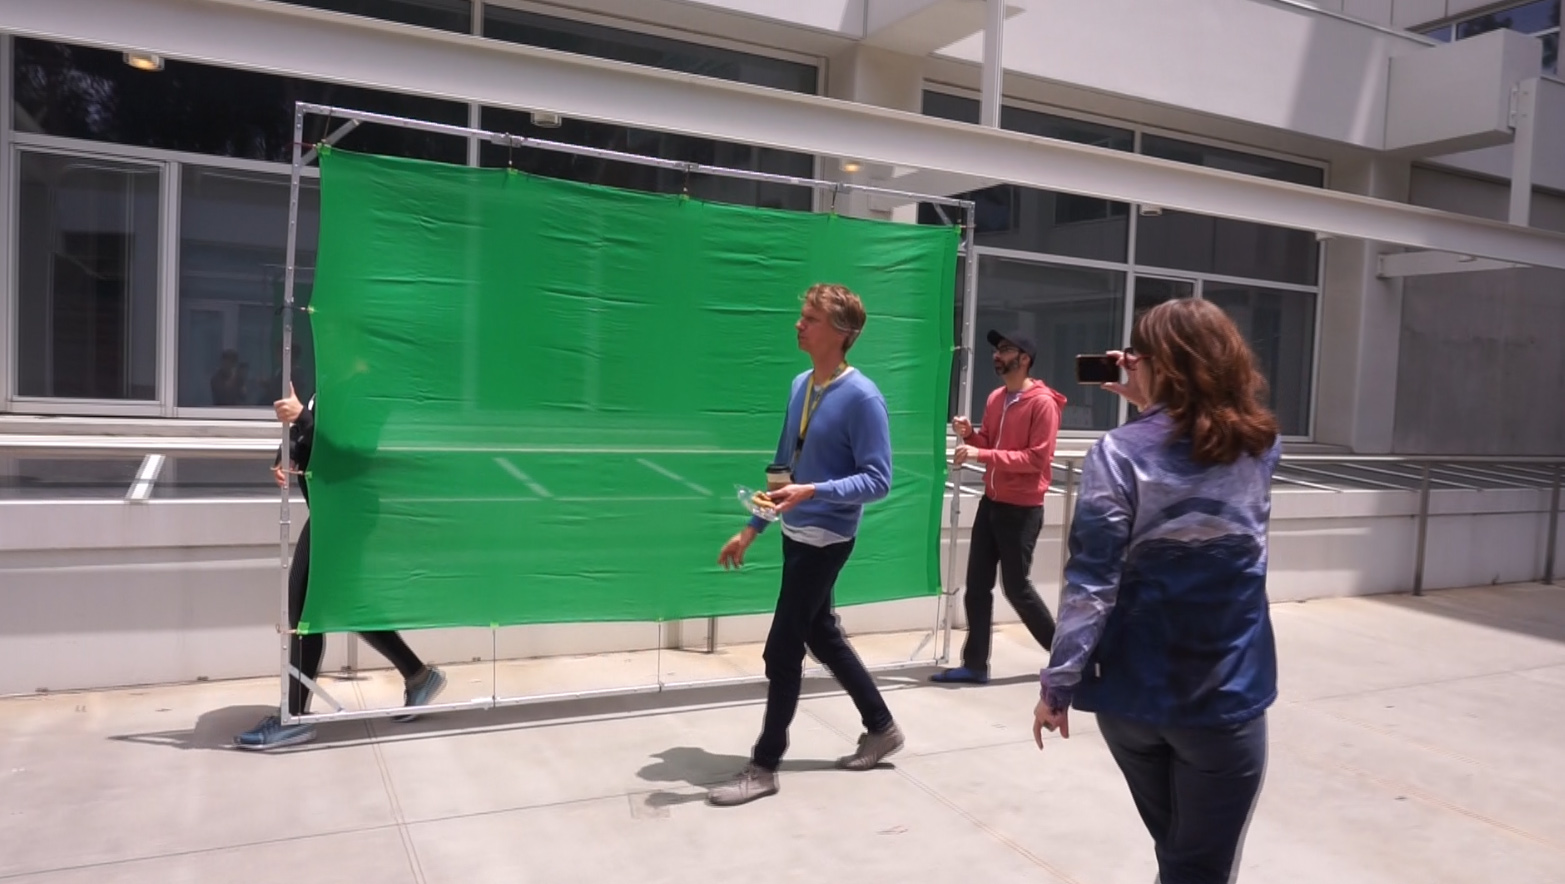 greenscreen-la-1-ucla